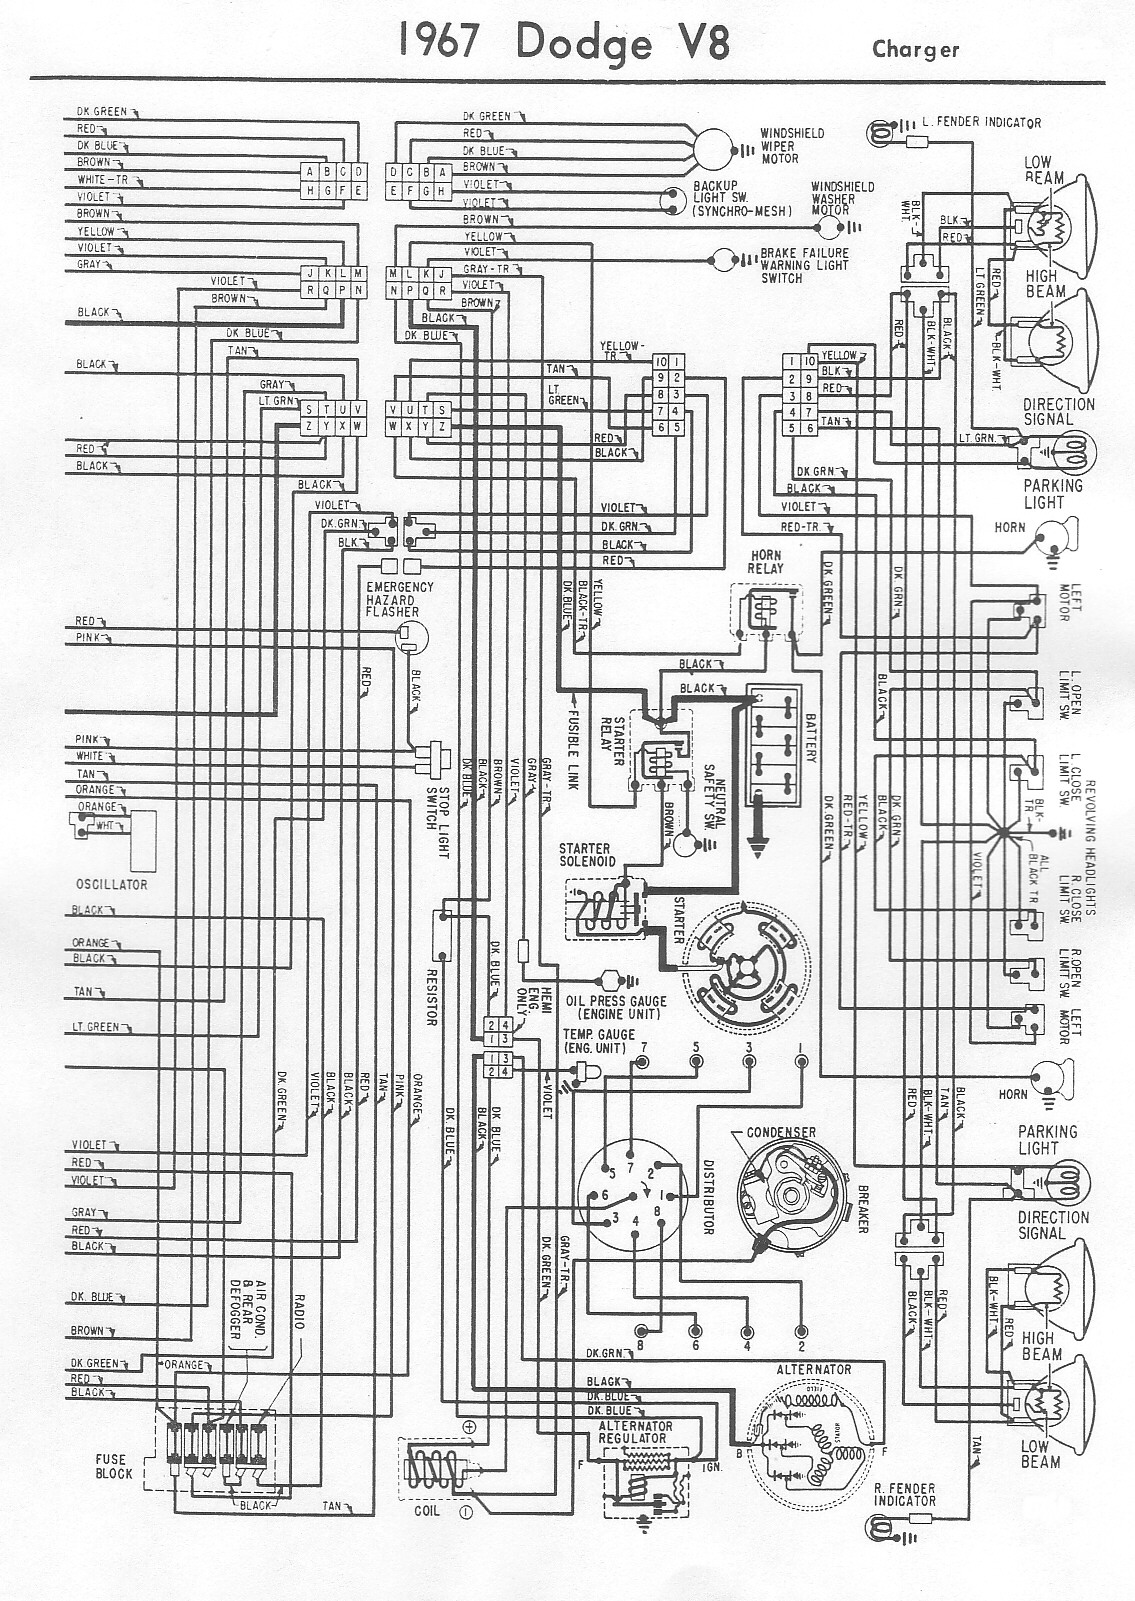 1967 Charger Wiring Diagram Trusted Diagrams 1968 Roadrunner 67 Product U2022